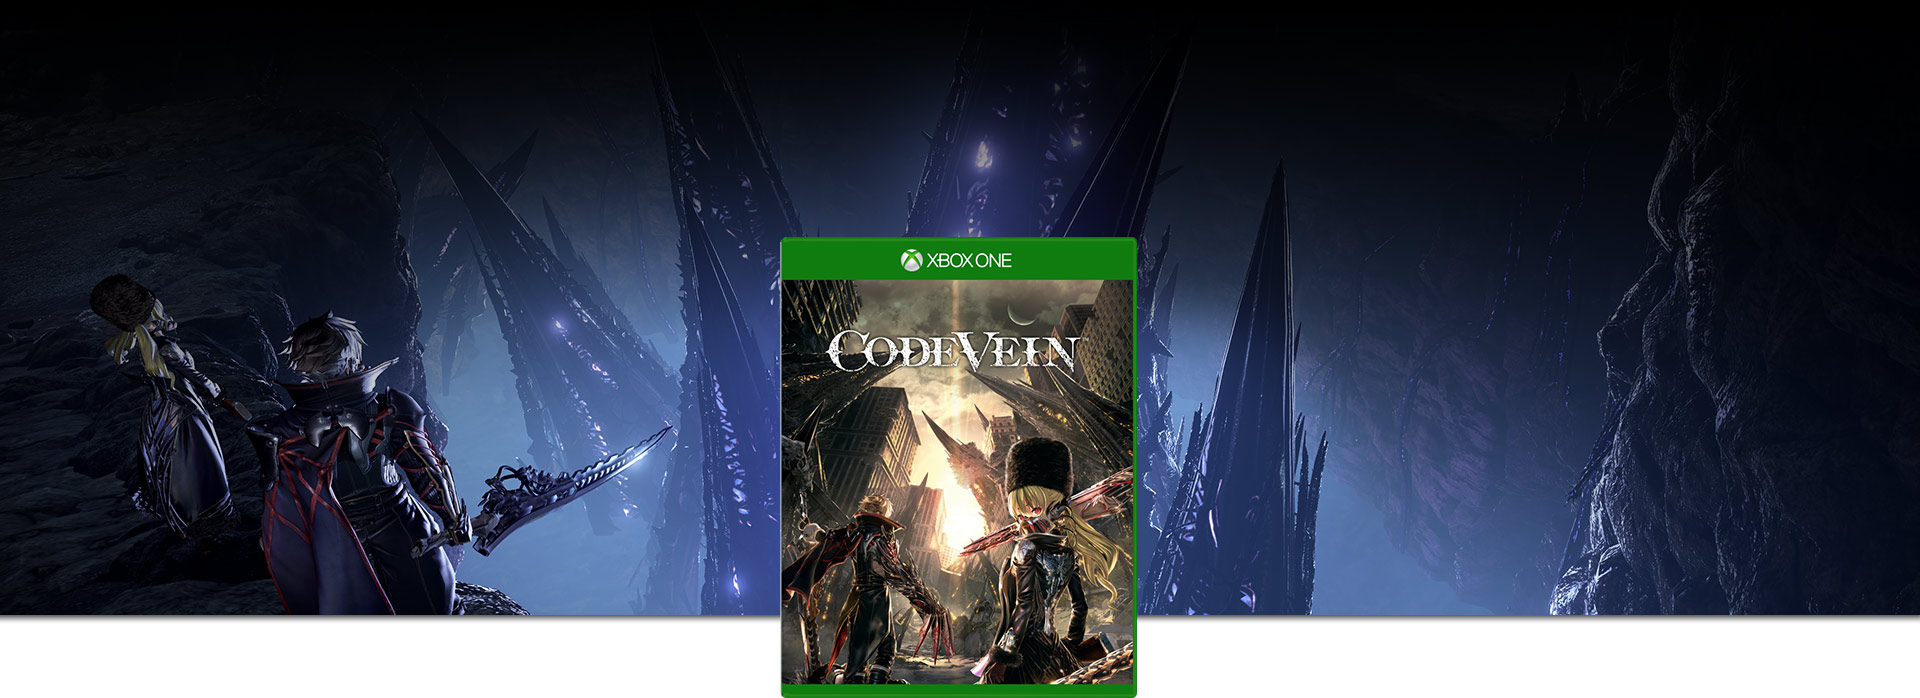 Code Vein boxshot, Characters looking at the Thorns of Judgement from a cliff